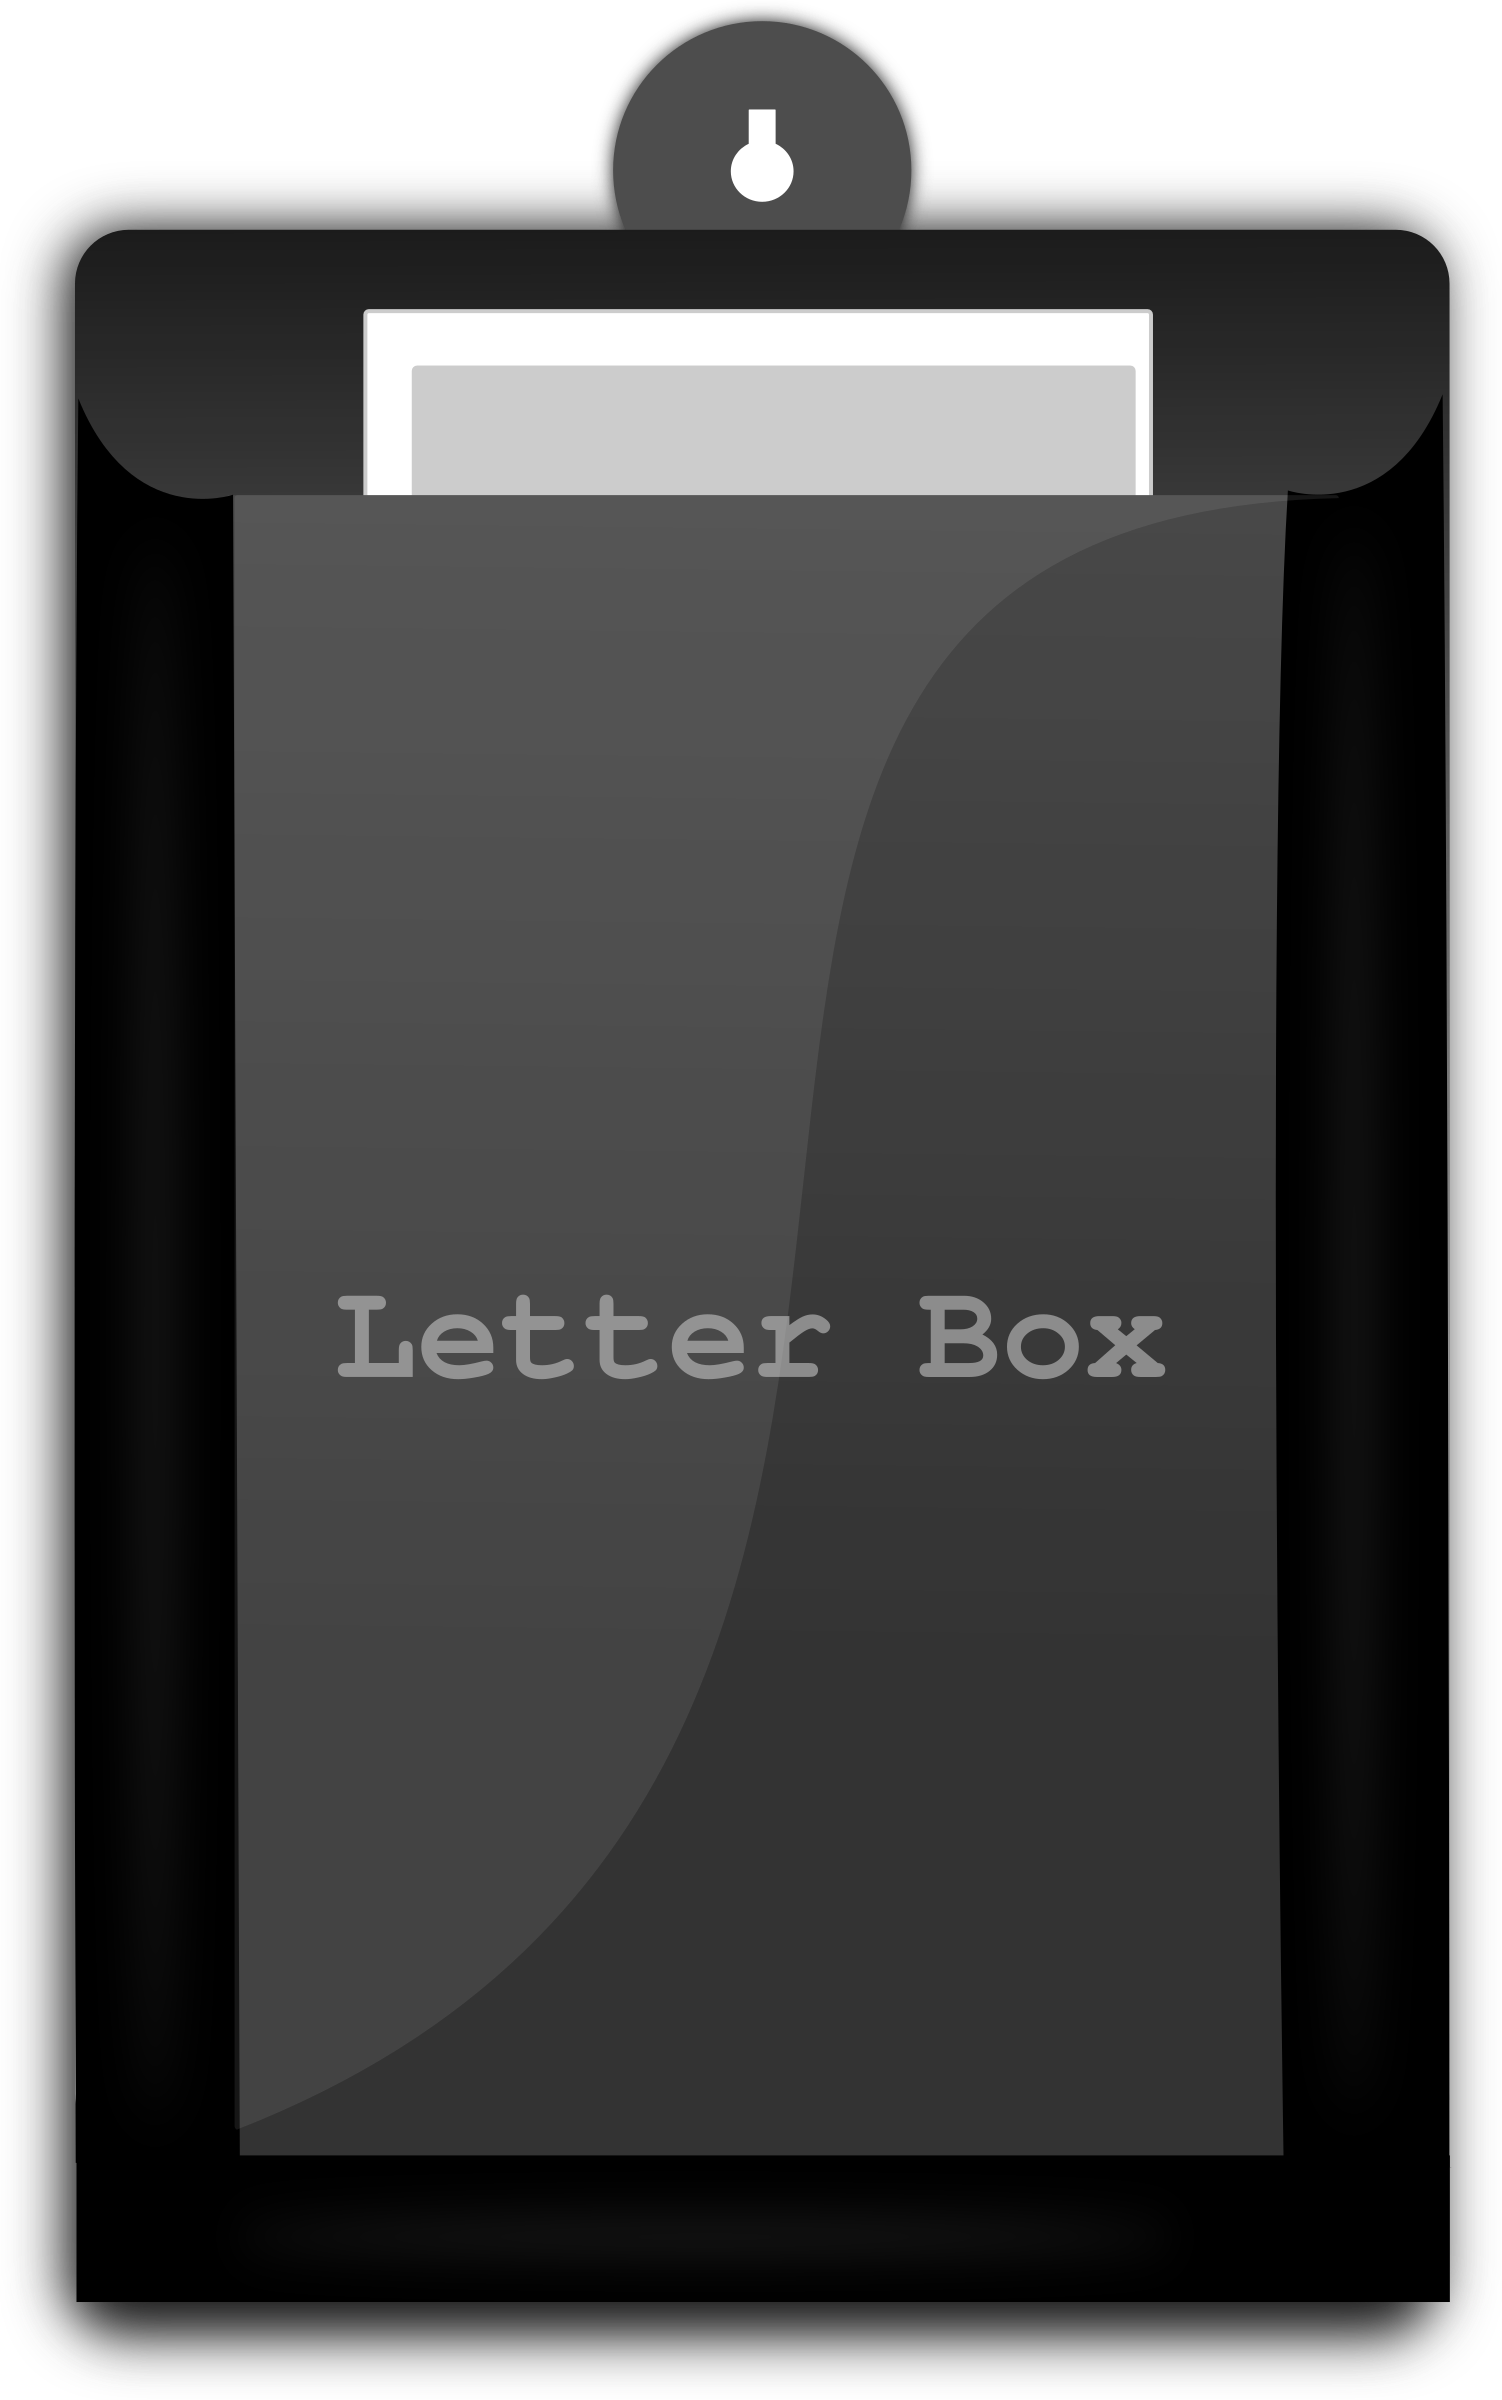 Letter Box by gsagri04